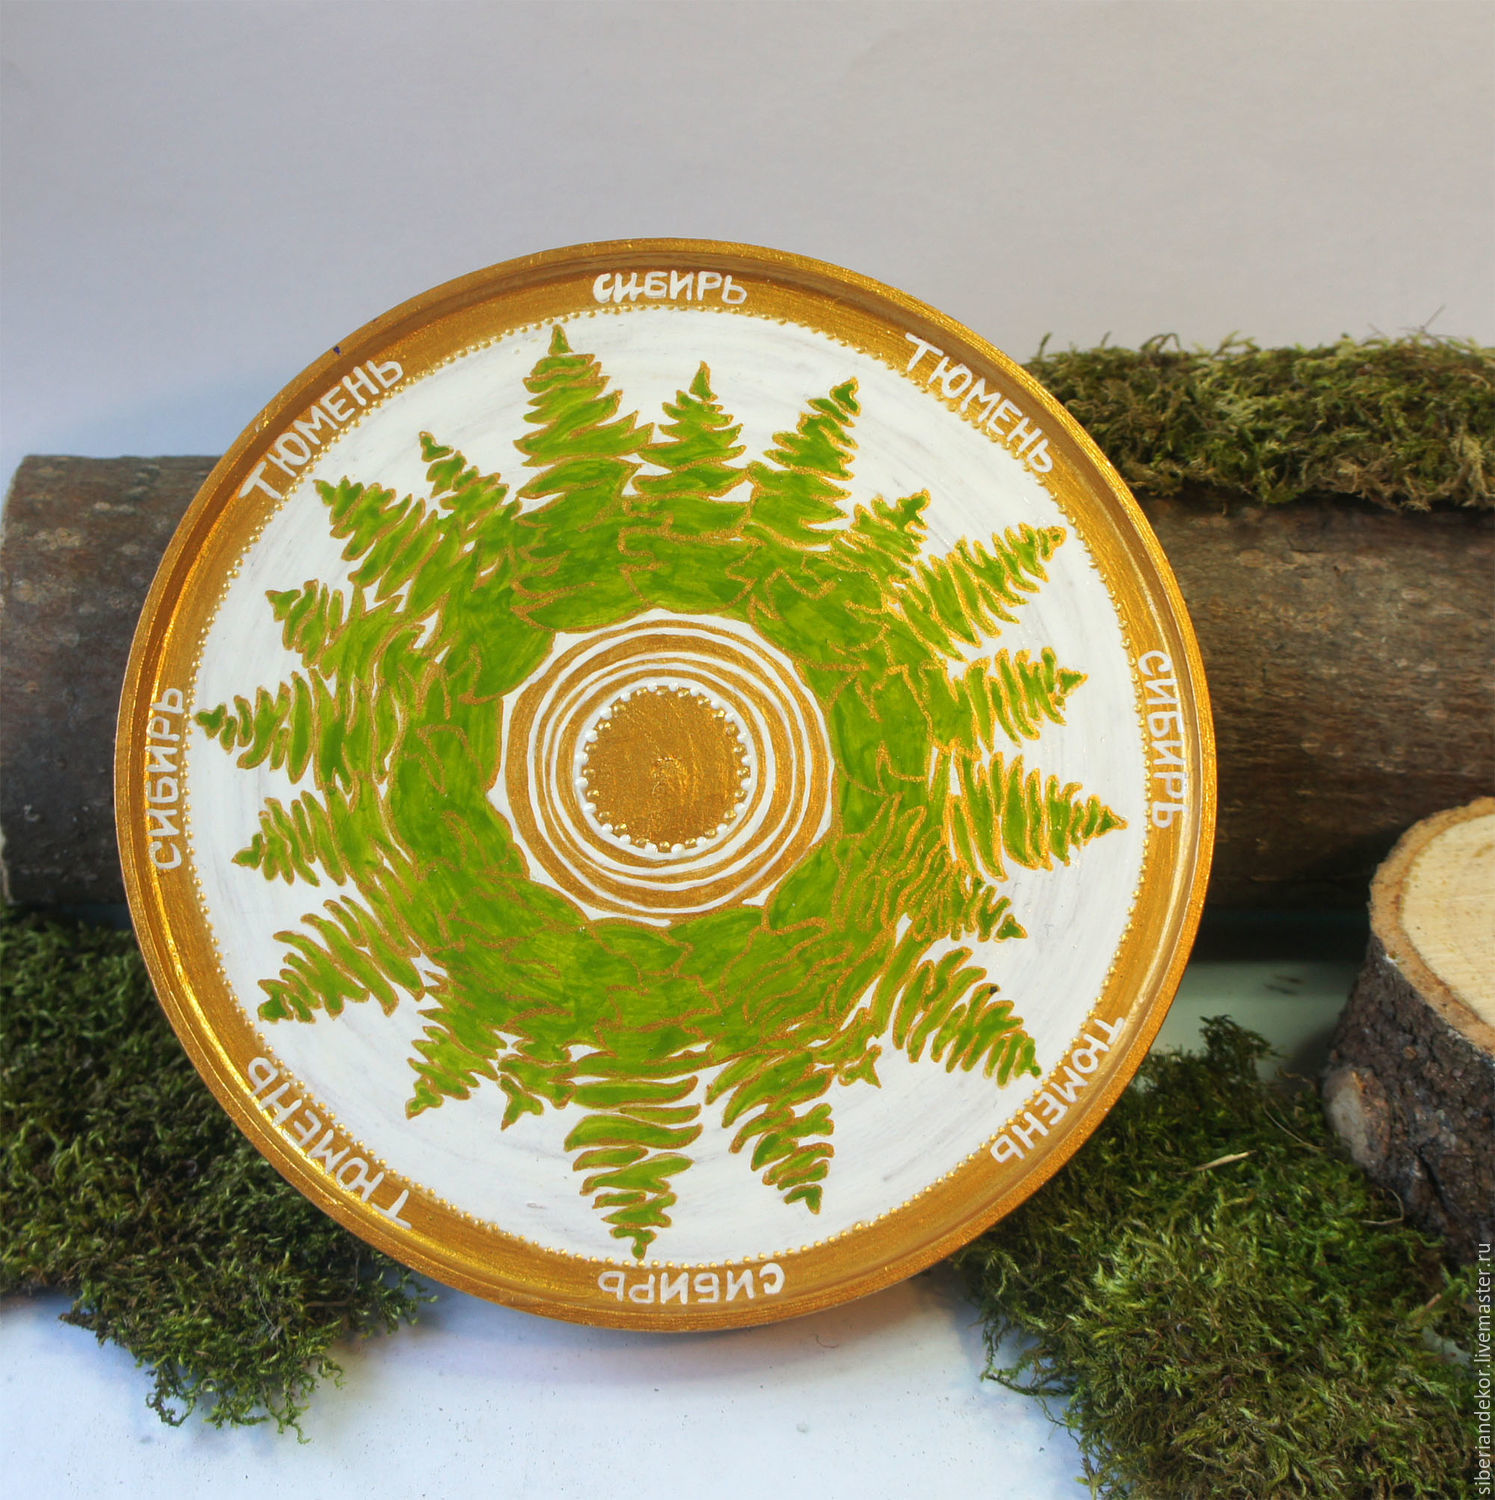 Perfect Decorative Plates For Wall Display Festooning - Wall Art ...